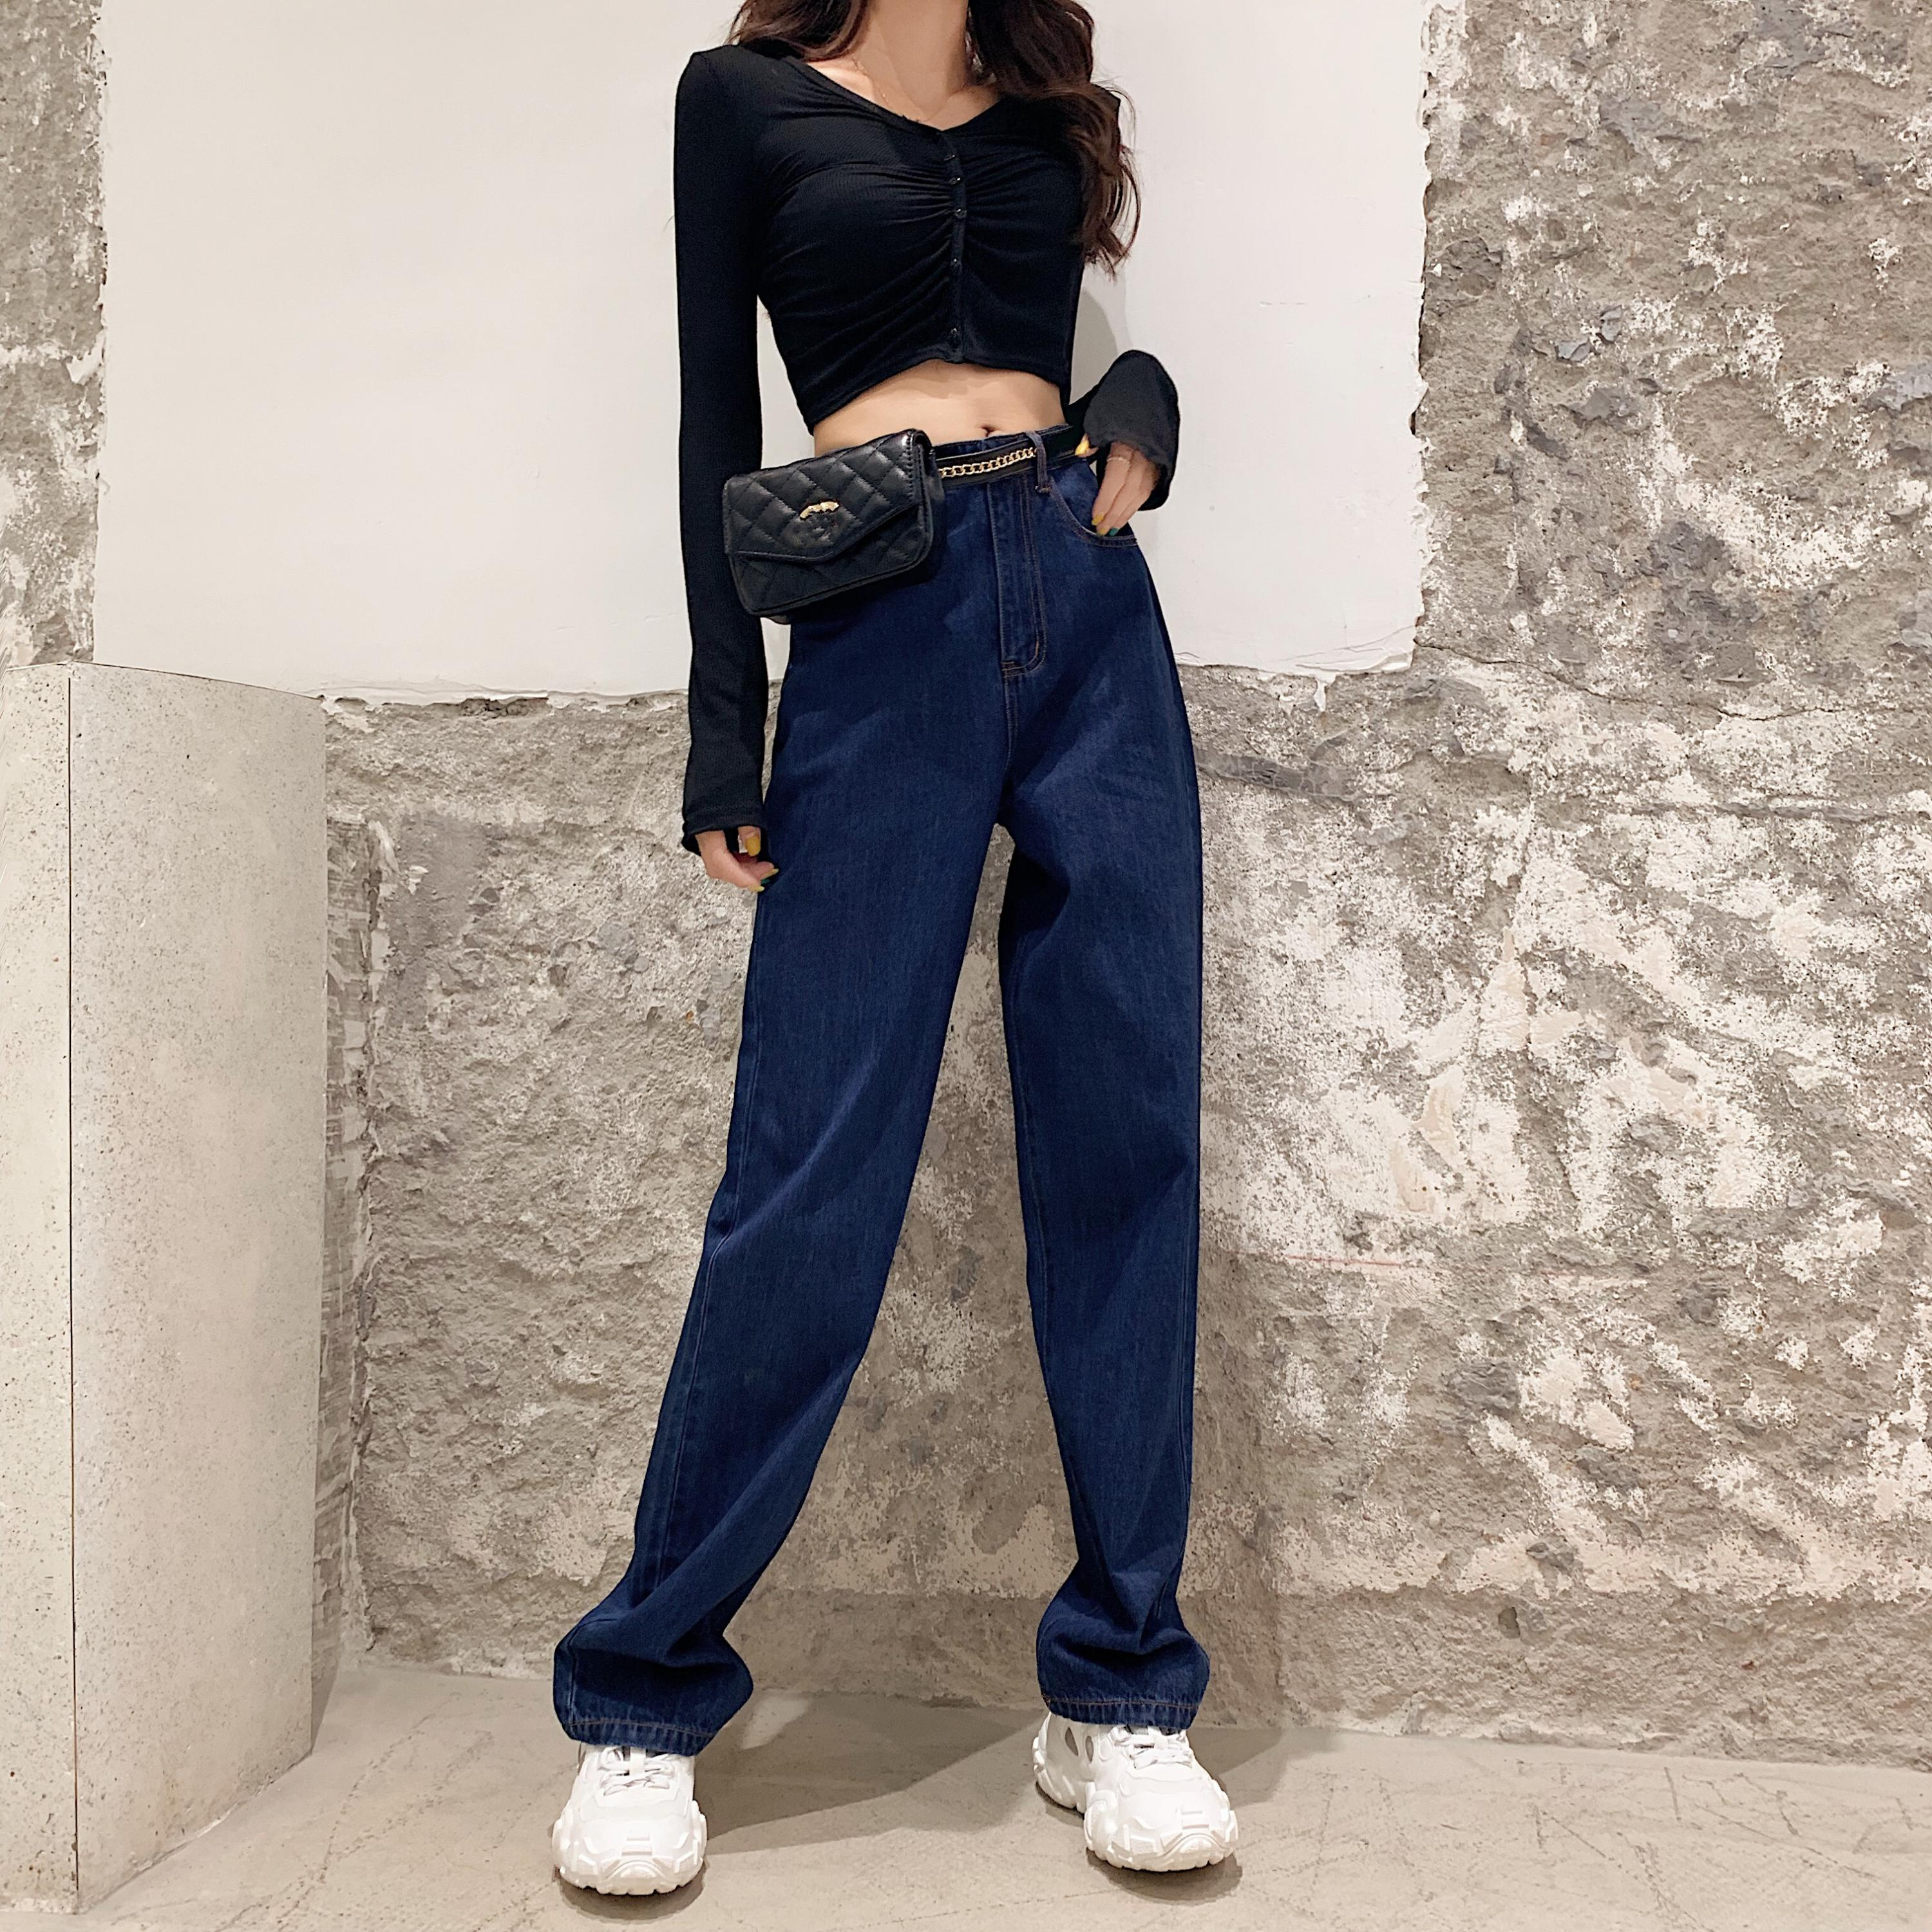 Boyfriend Street Jeans Women Plus Size Loose High Waist Vintage Straight Jeans Retro Denim Pants 2019 Cool Mom Jeans Chic